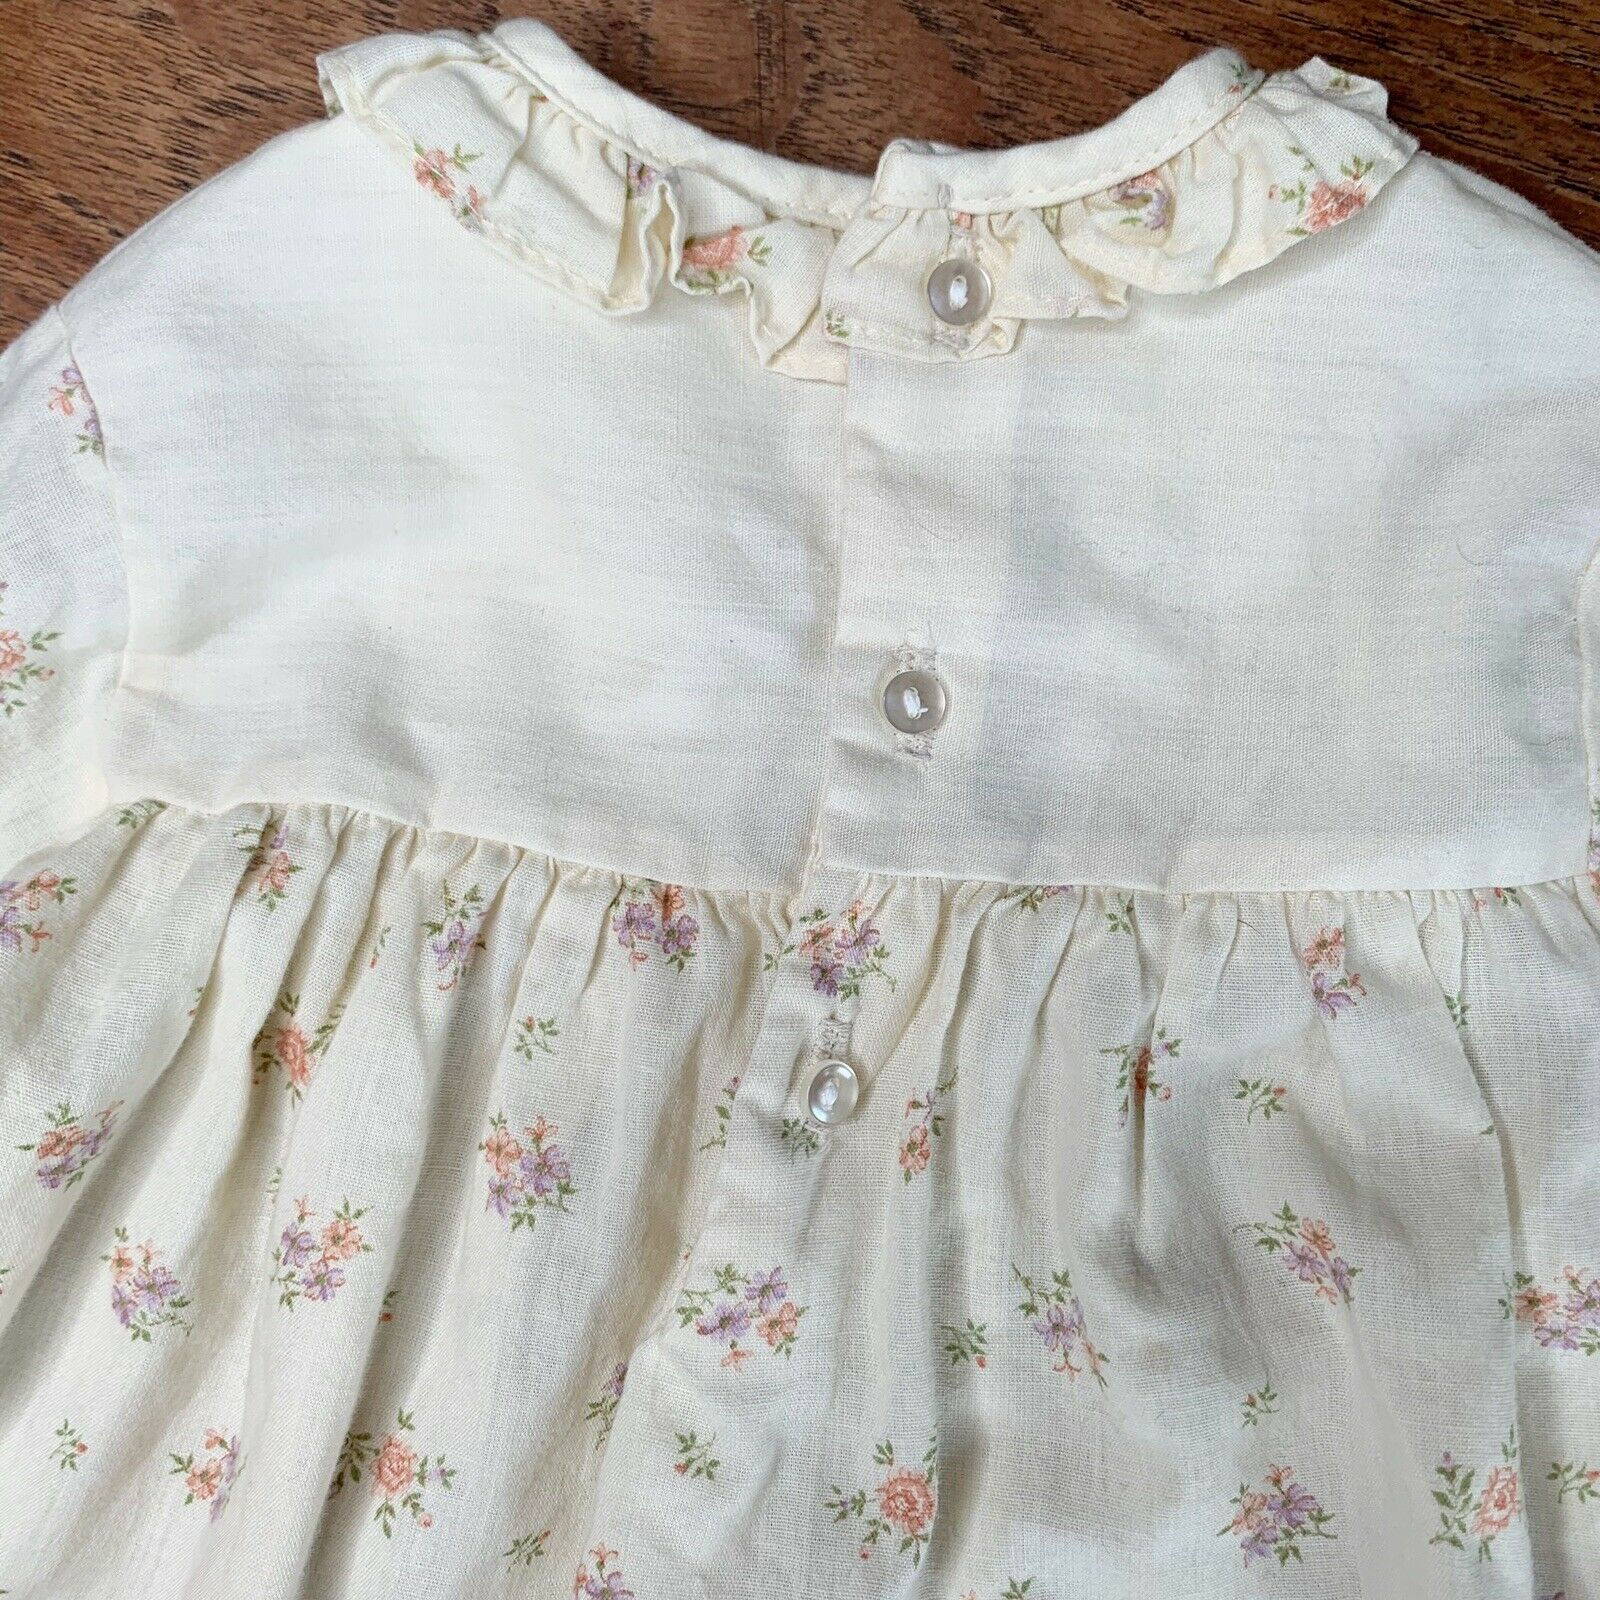 Vintage Girls 3T Tiered Prairie Dress Floral Lace… - image 5